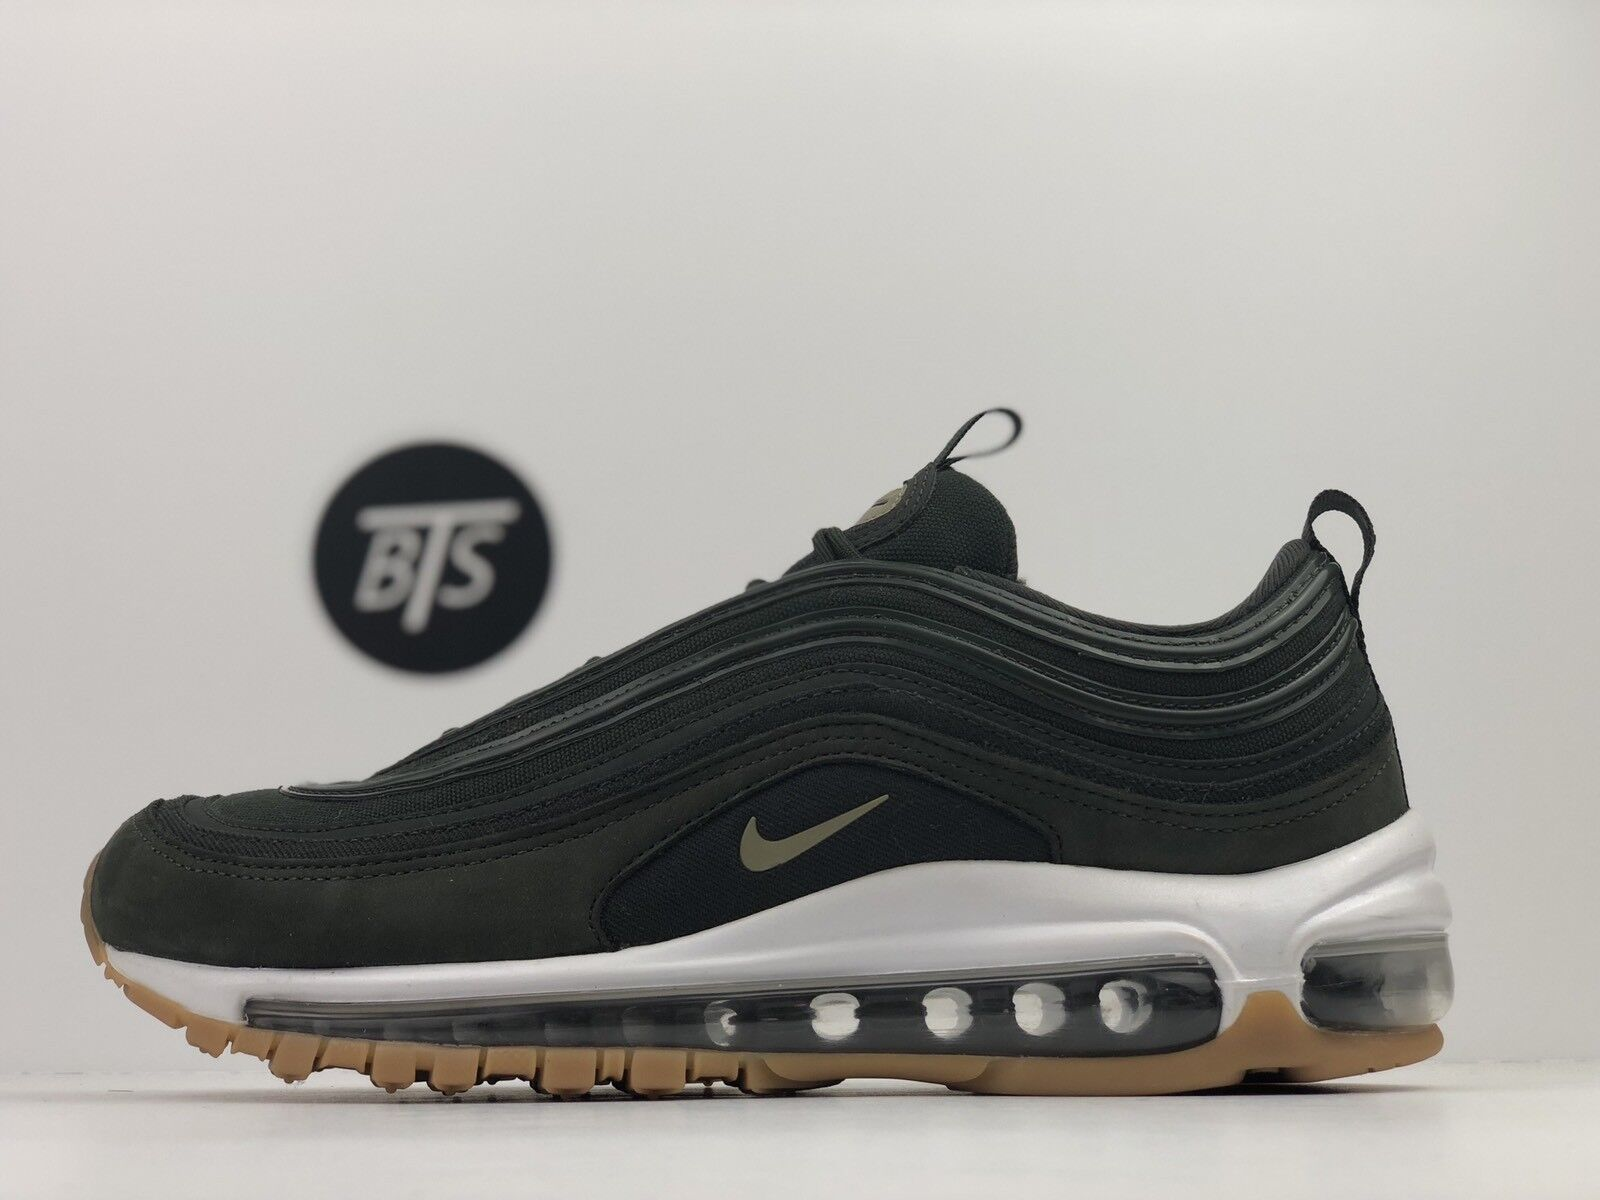 "Women's Neutral Nike Air Max 97 UL ""Sequoia"" Size-10 Neutral Women's Olive Green (AJ2248 300) 0436ea"